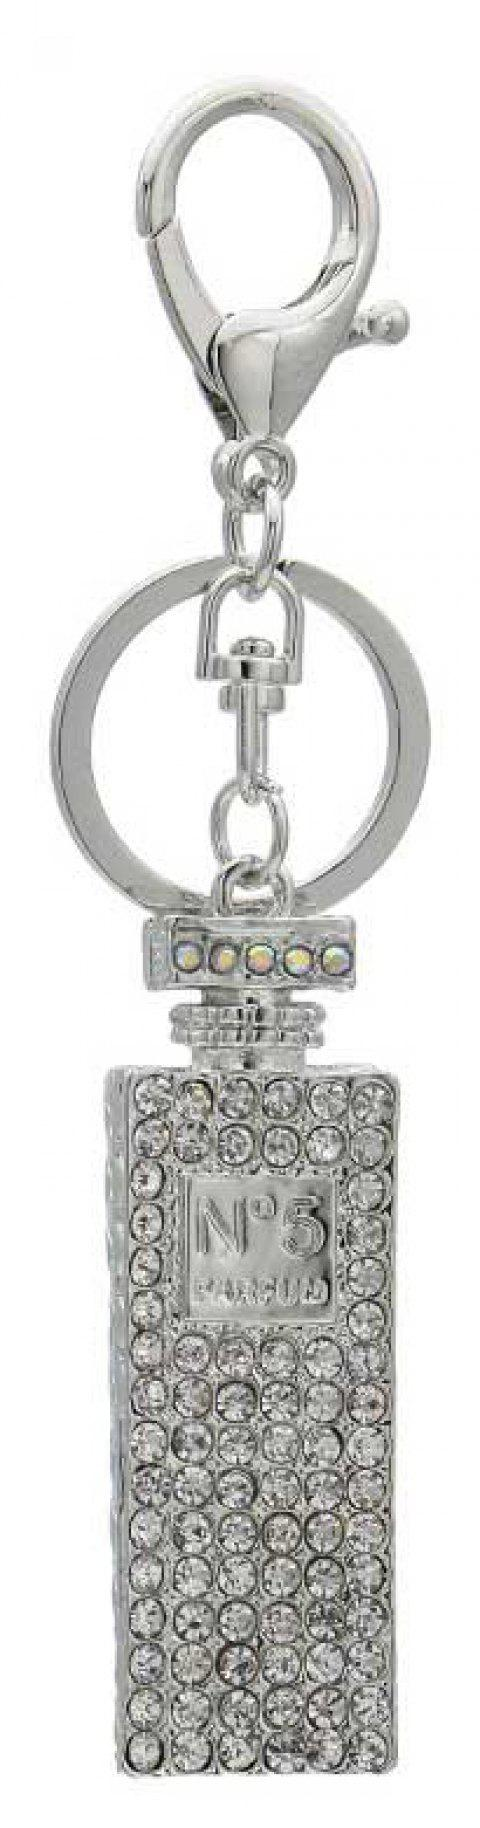 Creative Perfume Bottle Shape Decoration Rhinestone Key Chain - SILVER